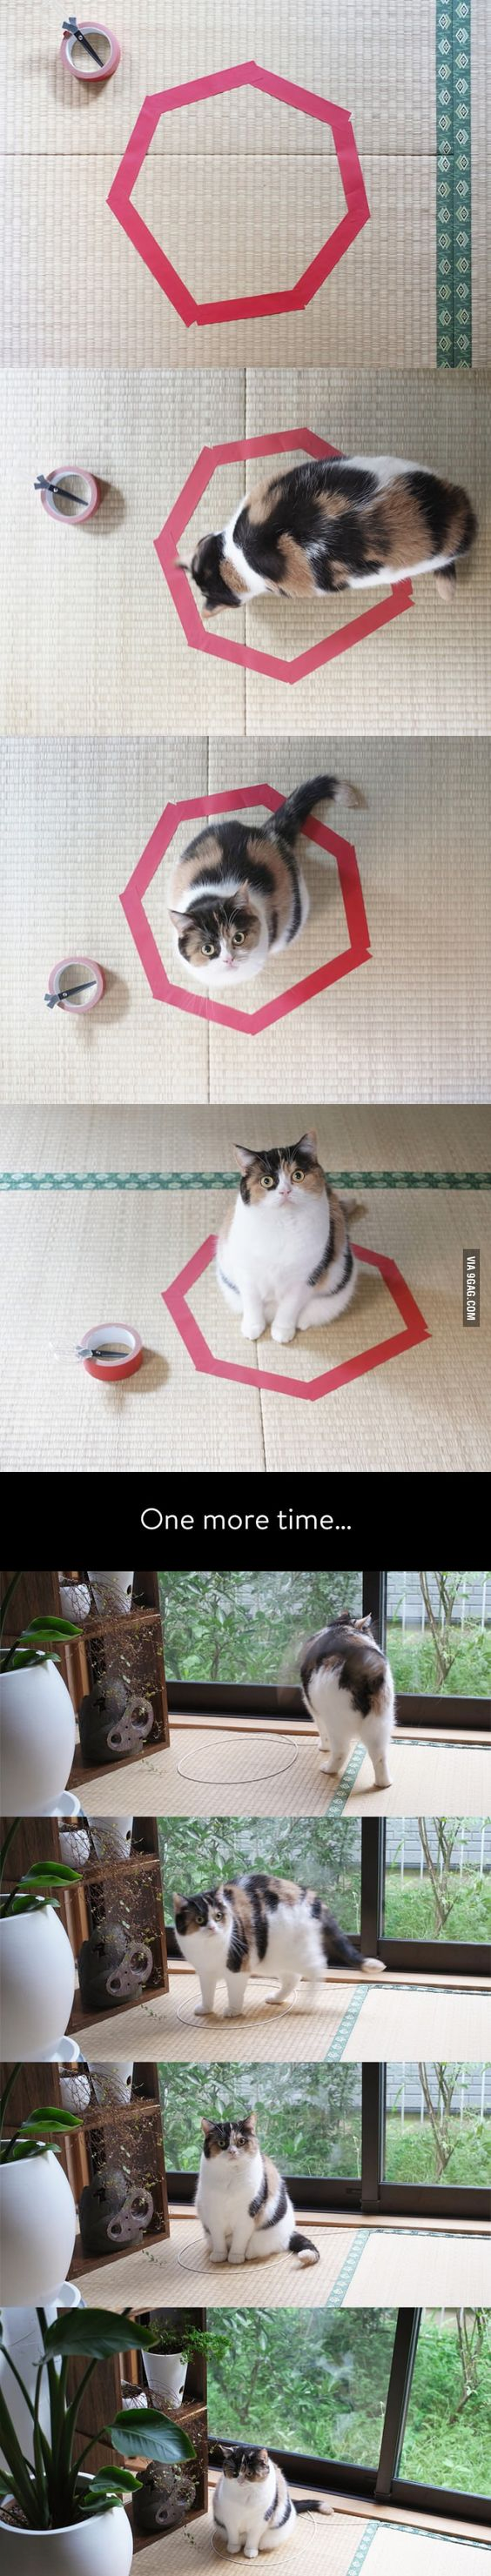 How to catch a cat in 15 seconds